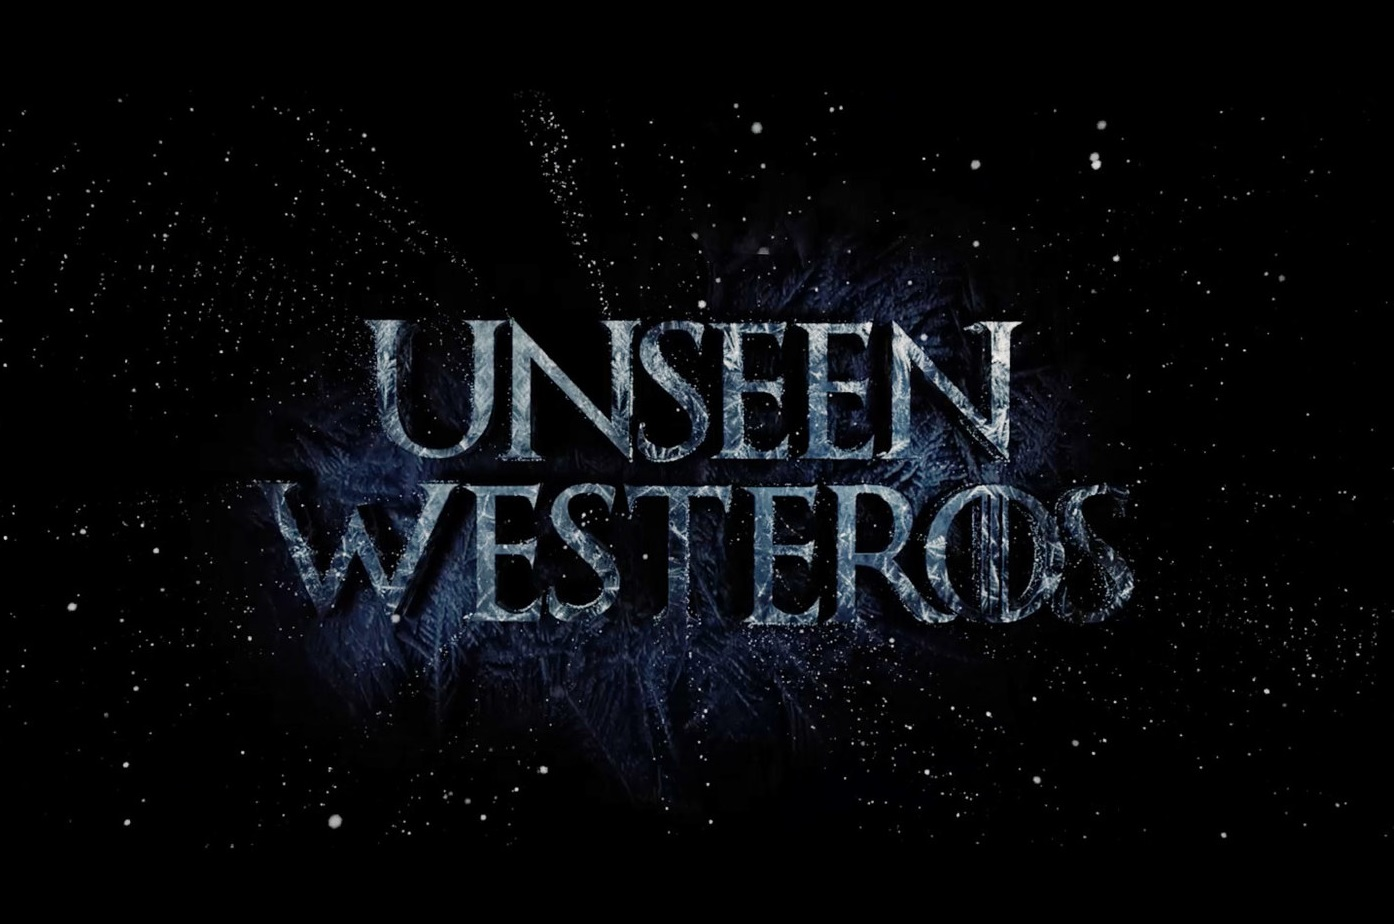 Explore Westeros From Game of Thrones In An Immersive 360 VR Experience